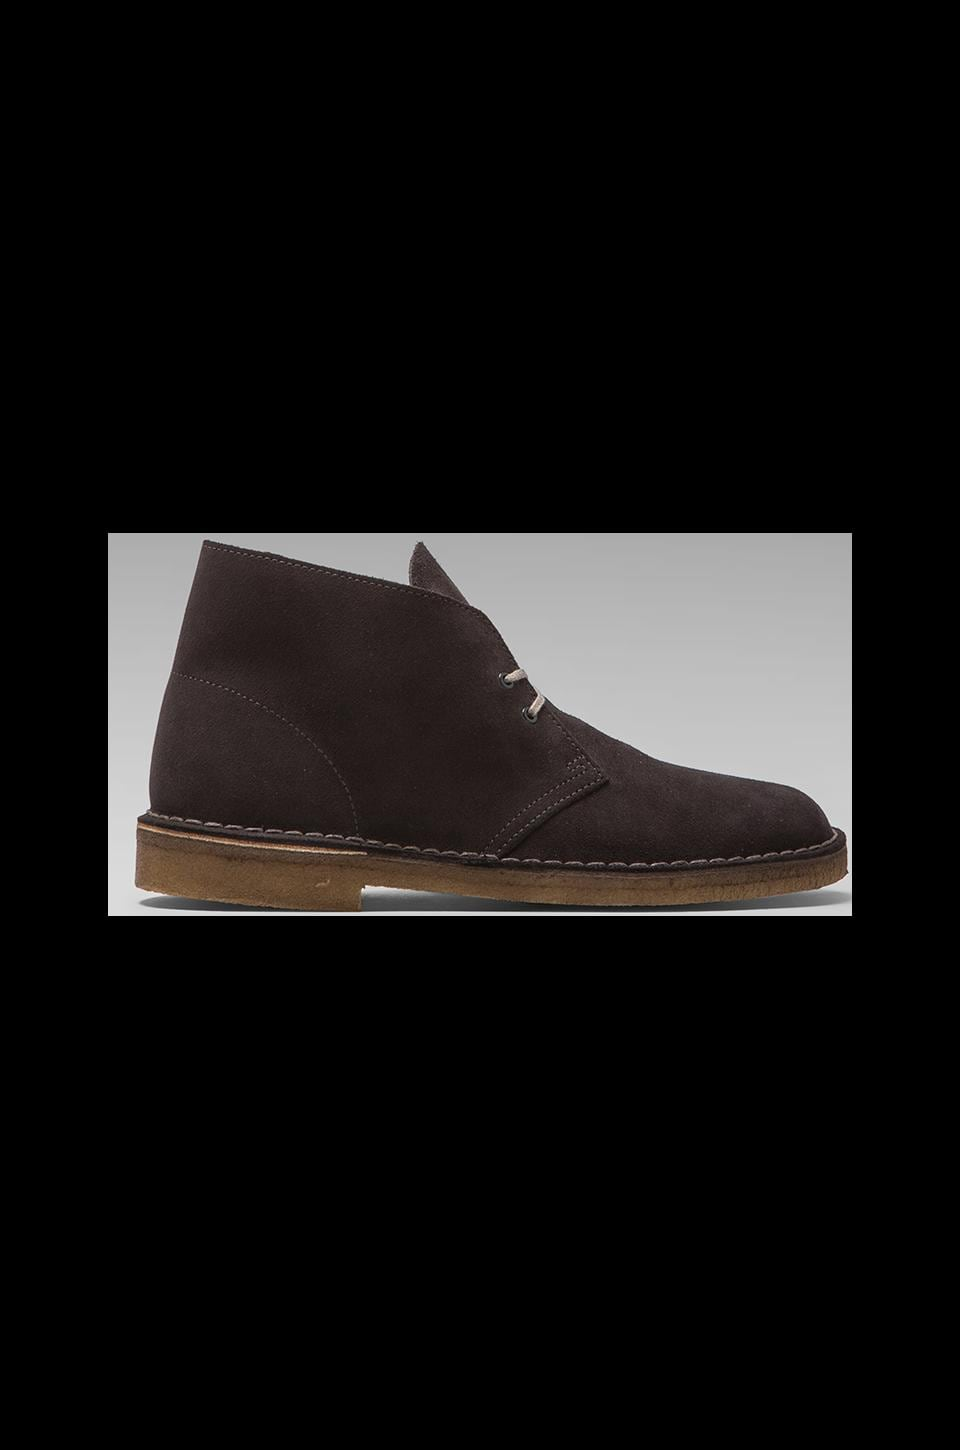 Clarks Originals Desert Boot in Dark Grey Suede